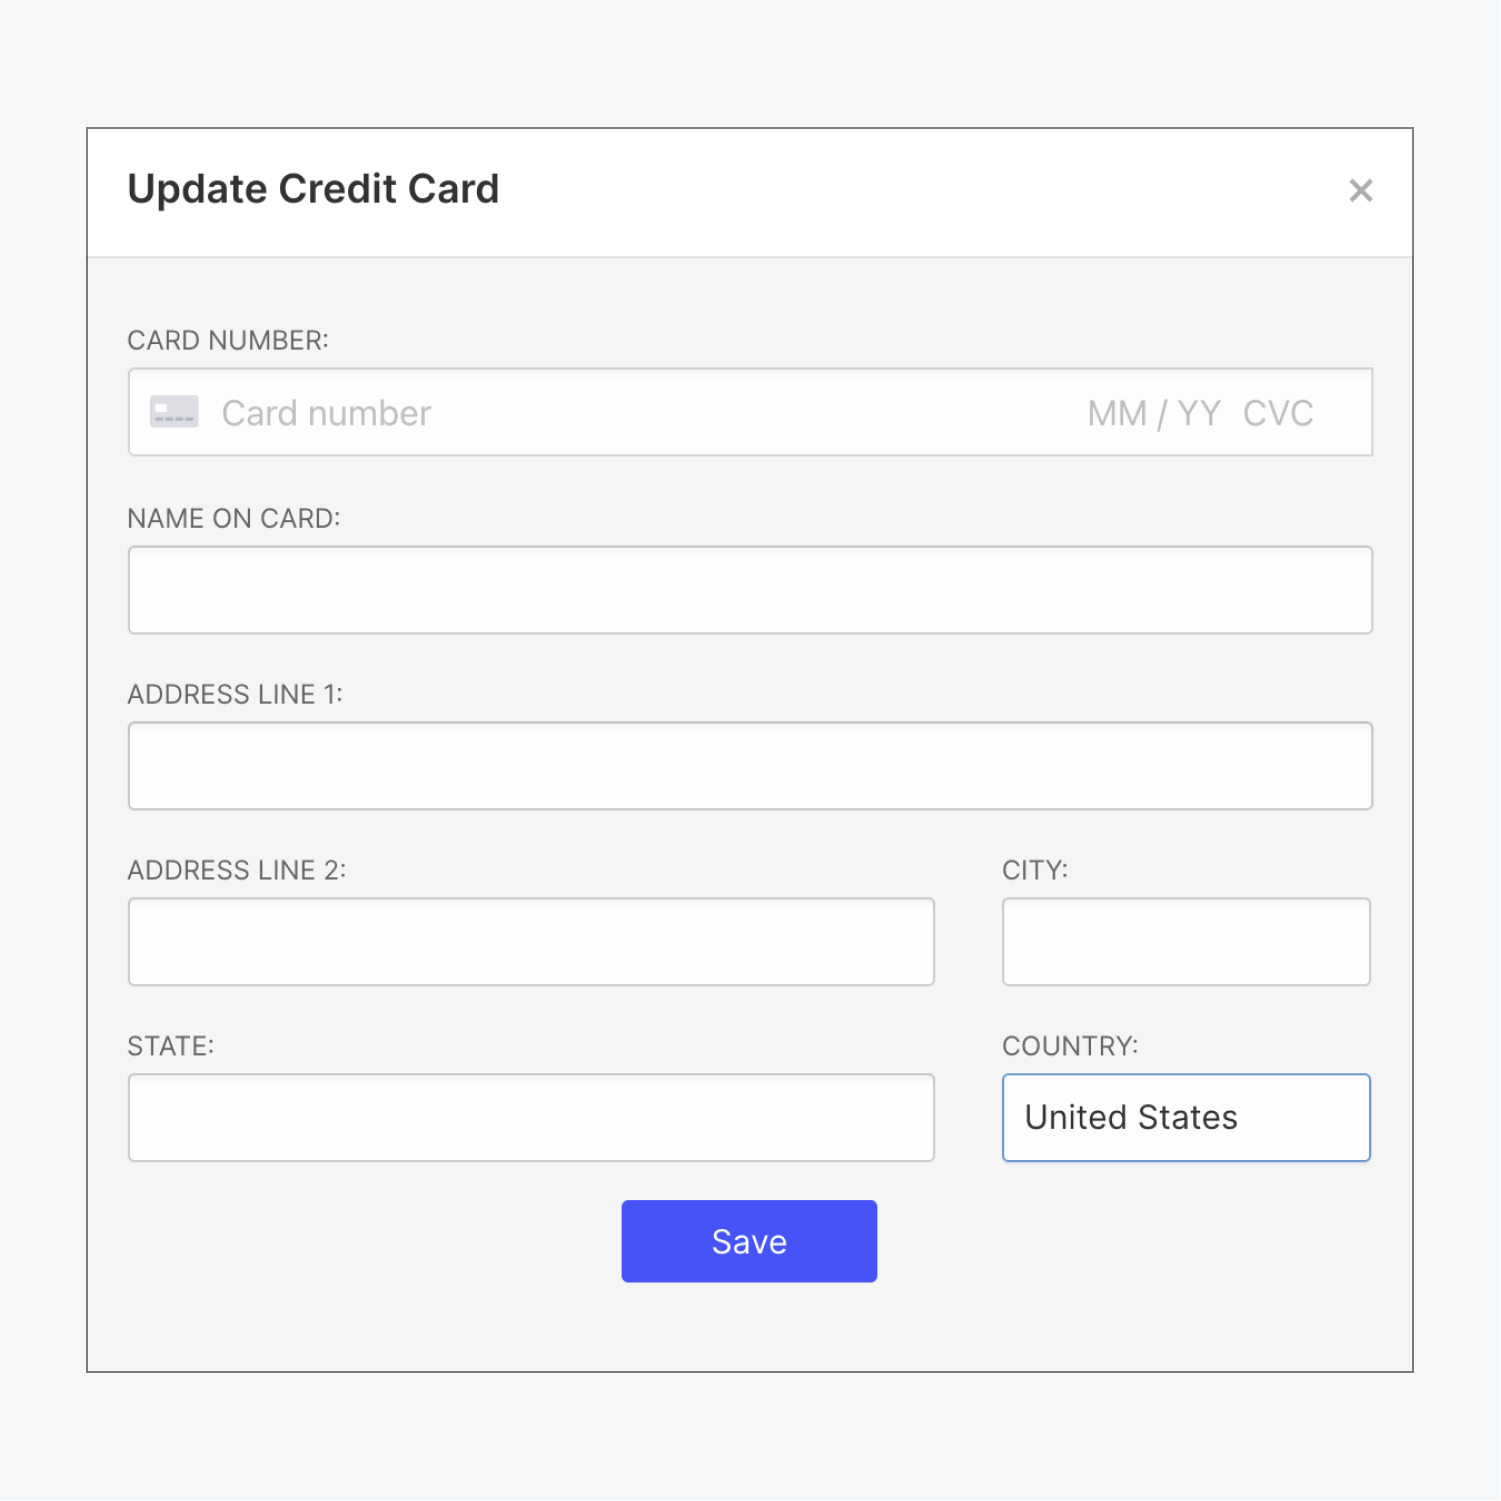 The update credit card pop-up modal is shown with sections to fill in card number, expiration, name on the card, and address details.